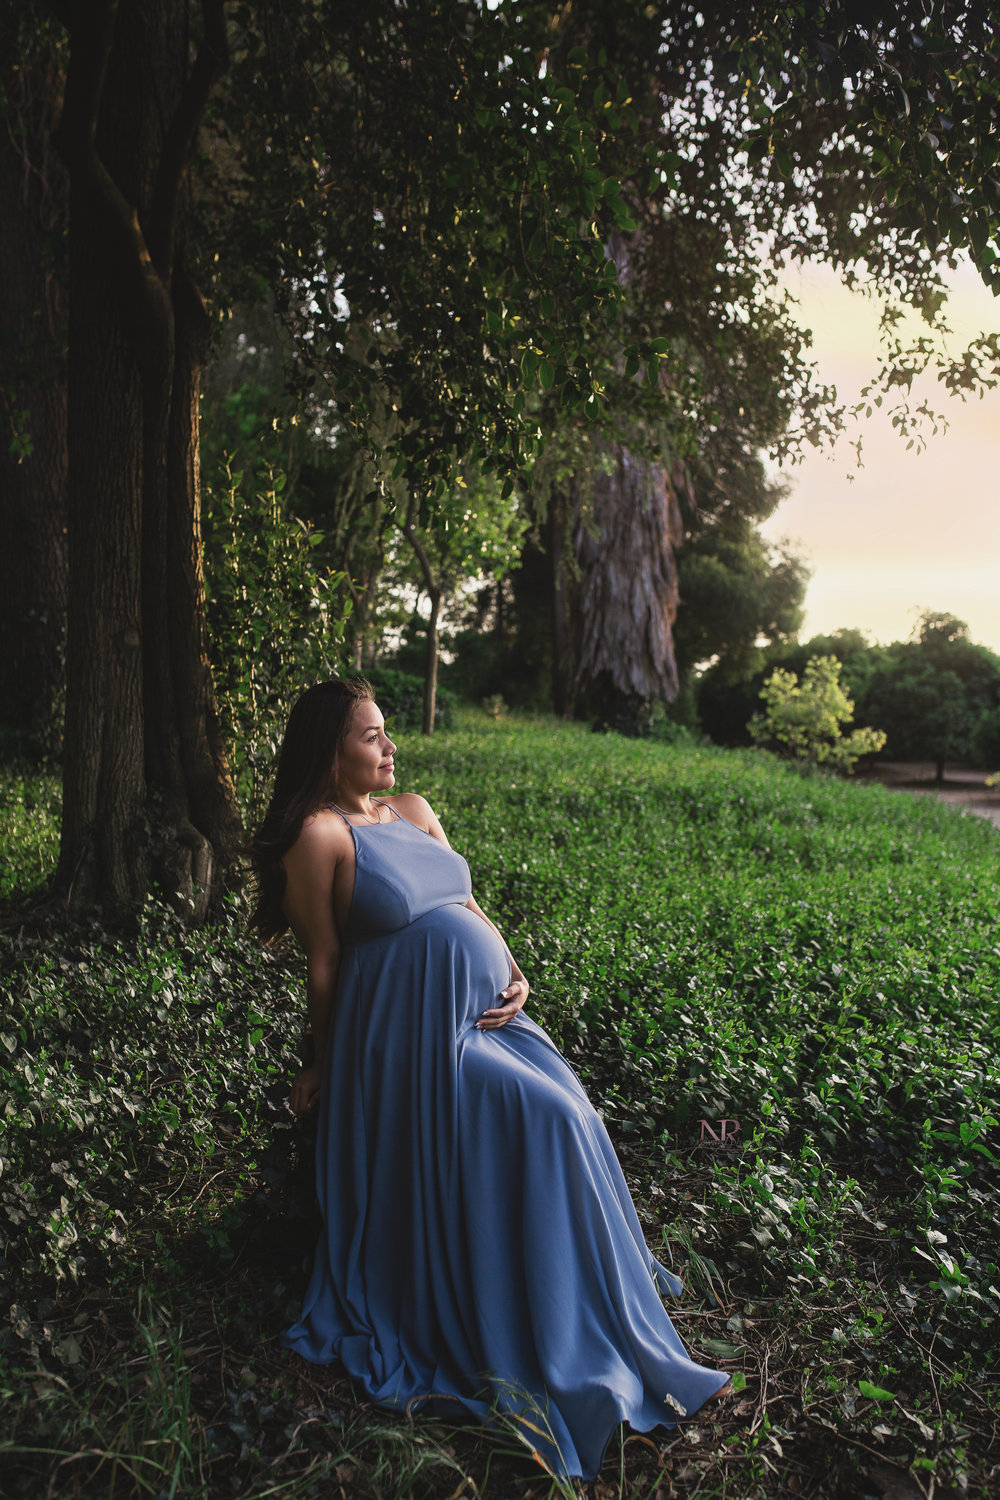 Oh My Goodness.   The beauty here.  She is stunning!  This maternity image is everything I would want of myself hanging on my wall.